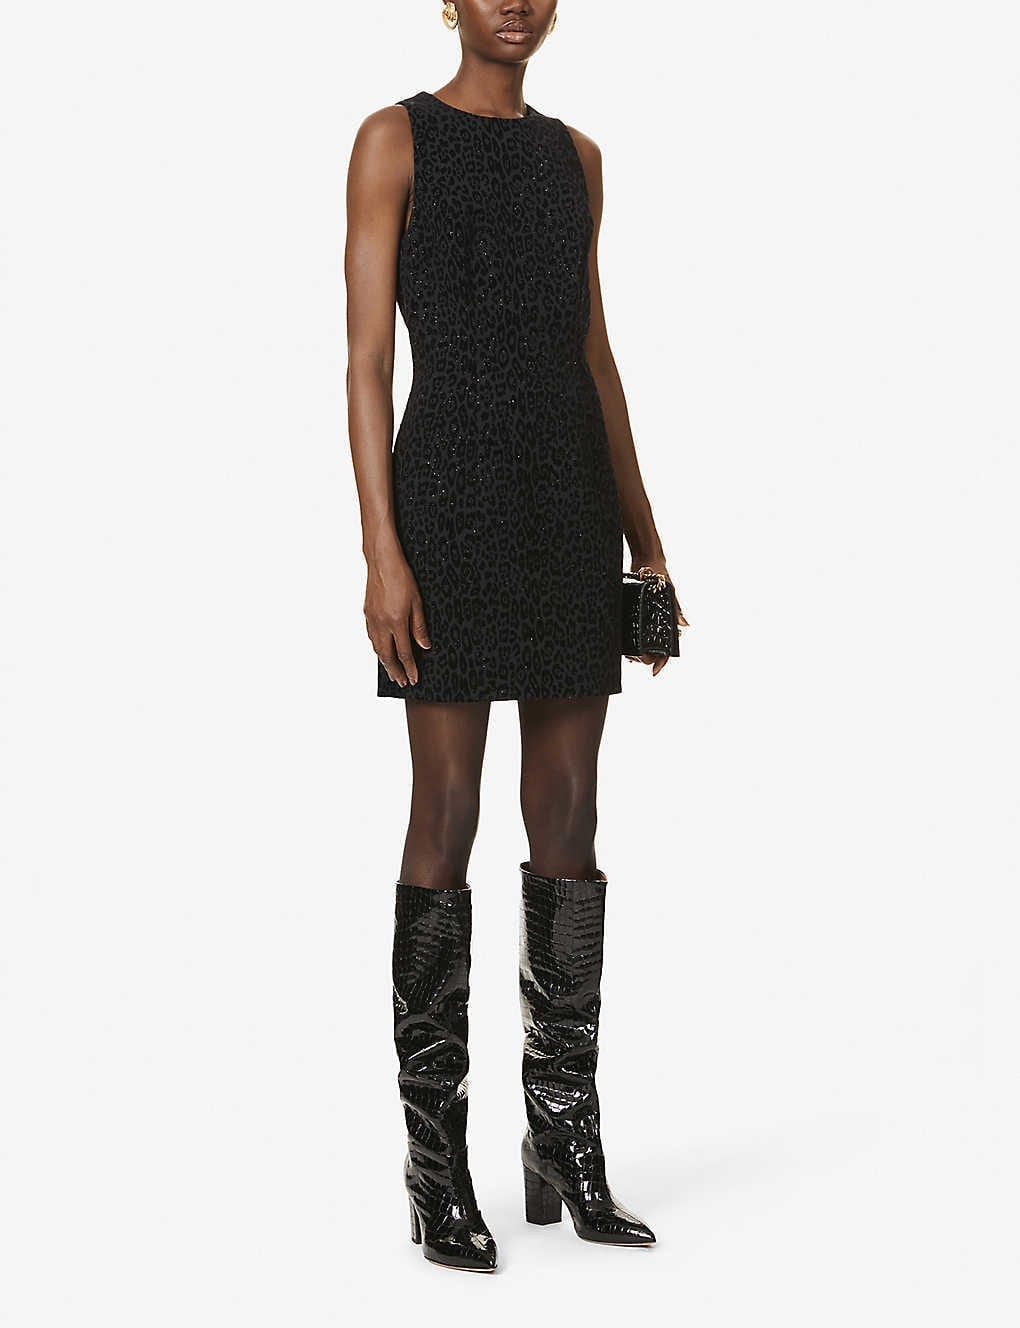 BALMAIN Glittery Stretch-jacquard Mini Dress